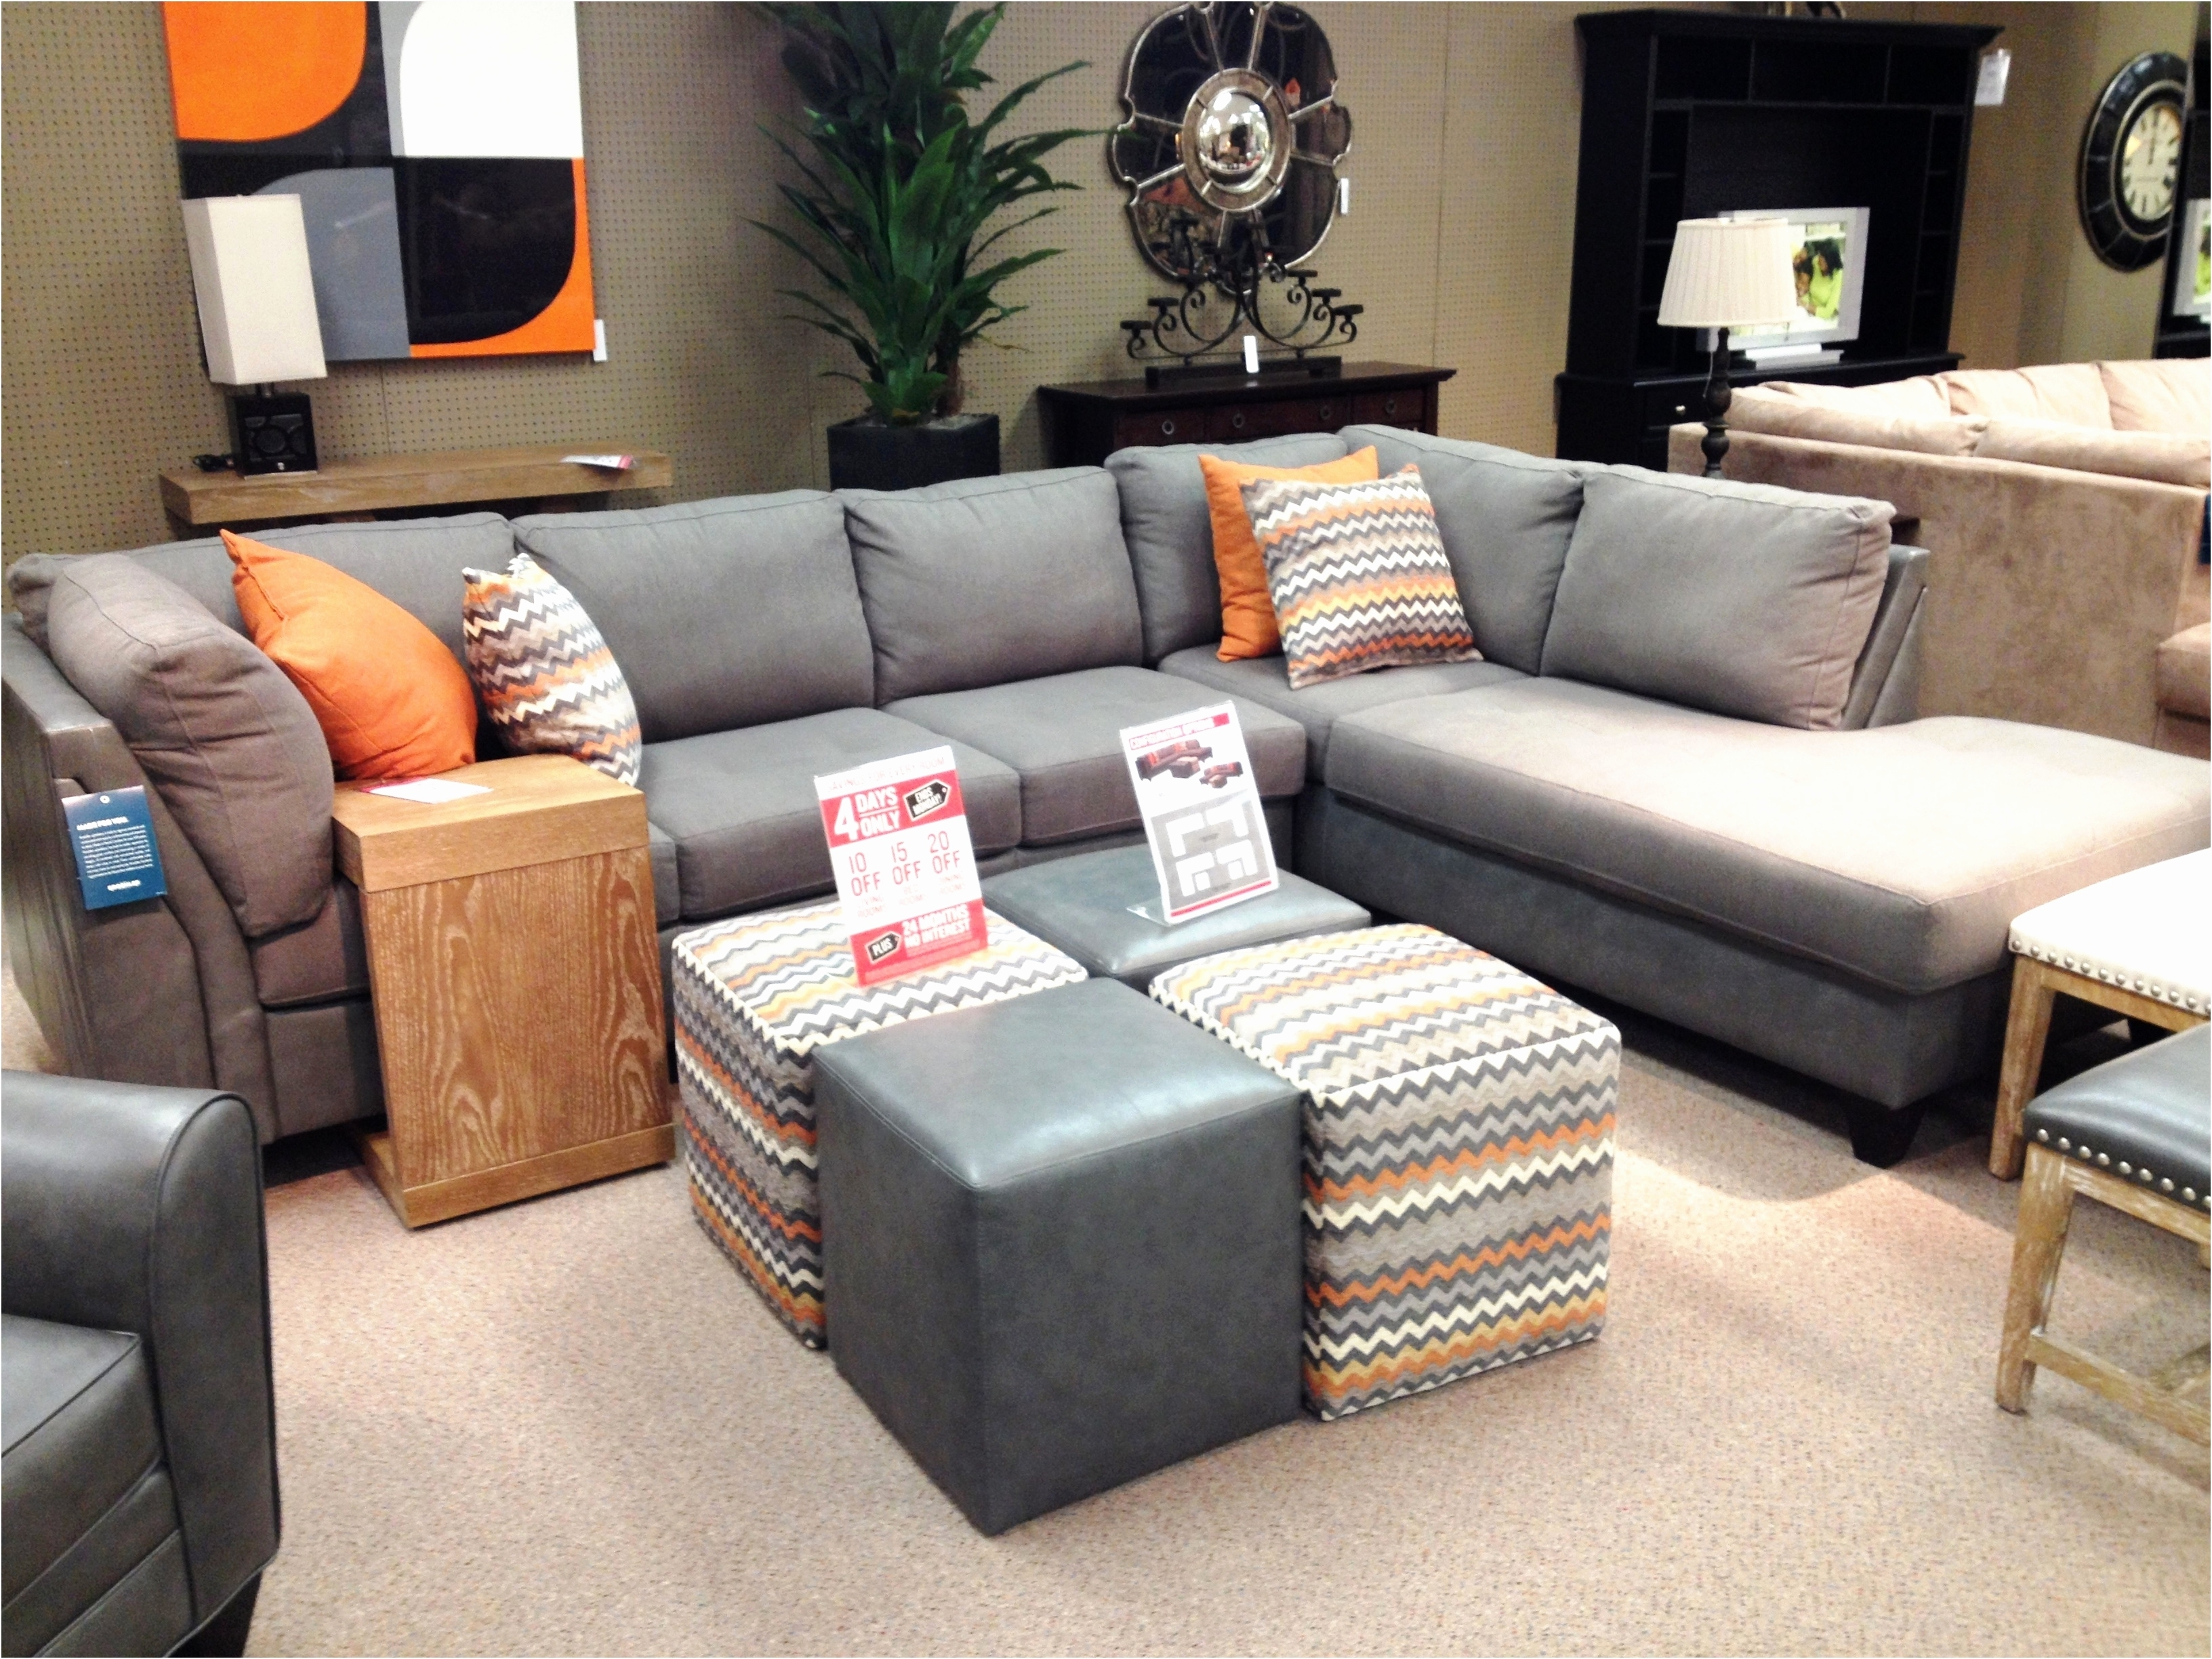 2018 Luxury Sectional Sofas Mn 2018 – Couches Ideas In Mn Sectional Sofas (View 13 of 15)